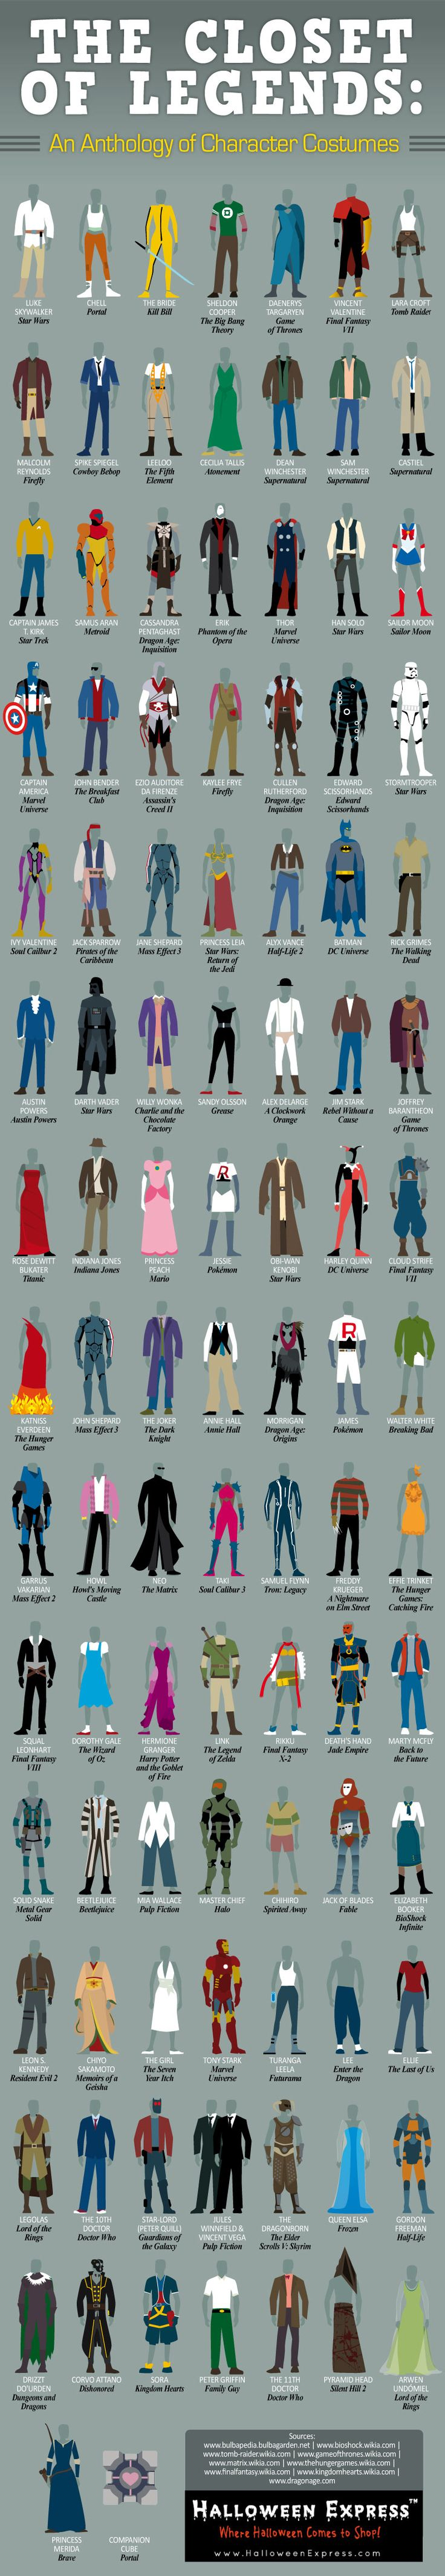 The Closet of Legends: An Anthology of Character Costumes